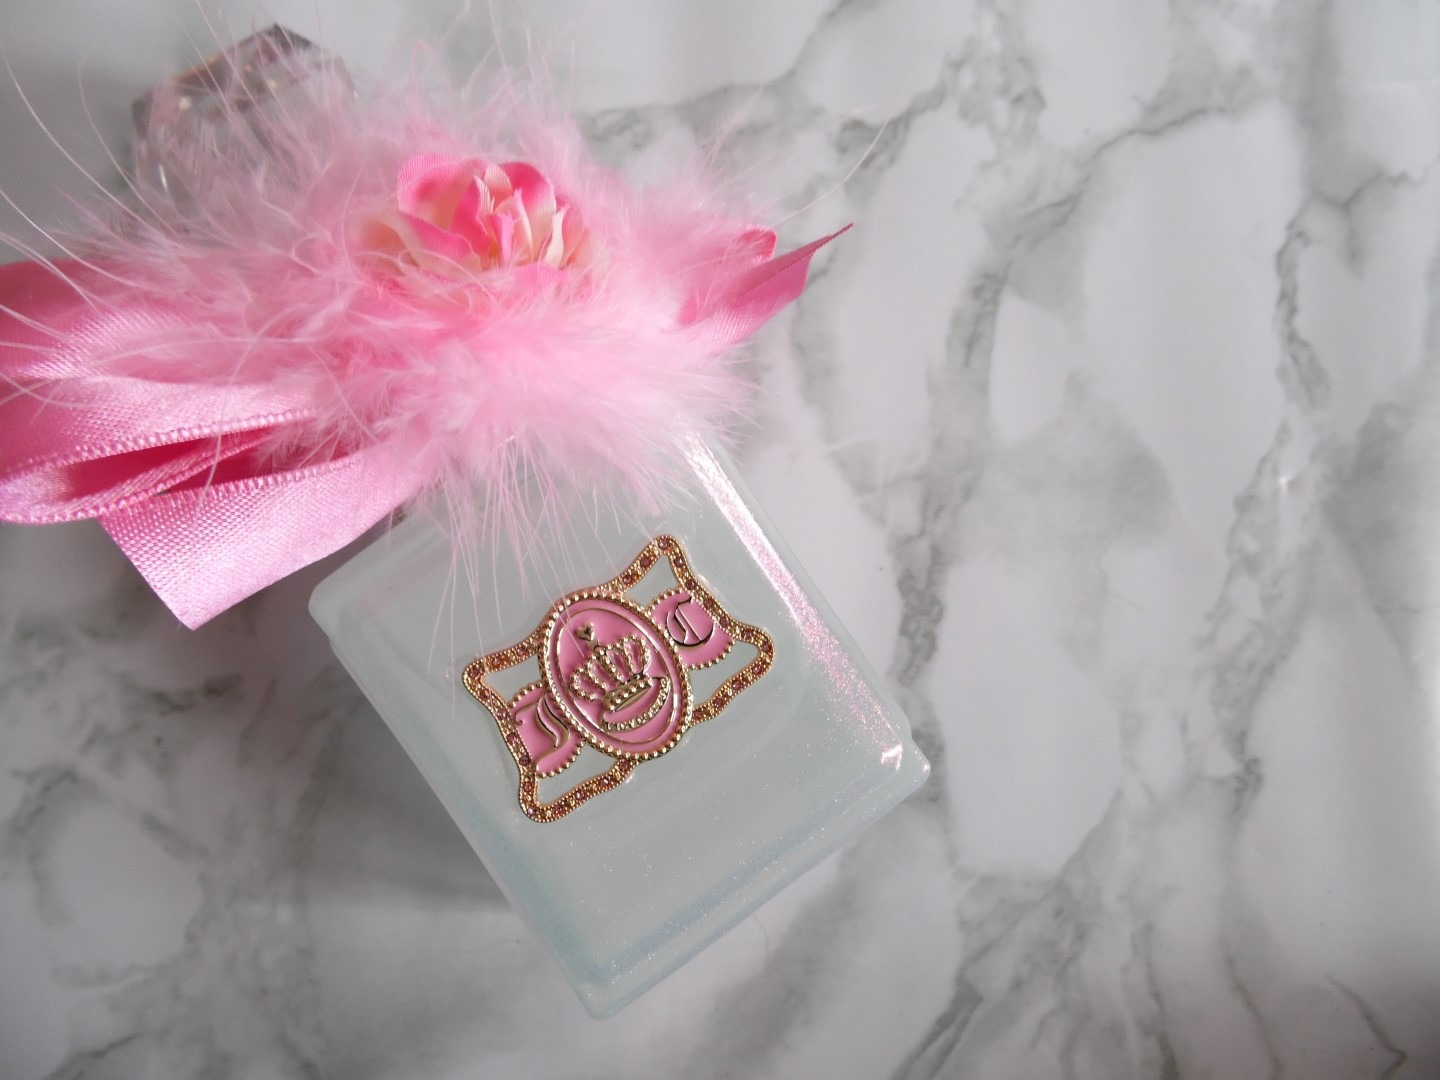 Viva La Juicy Glace' Juicy Couture - By Megan Kelly